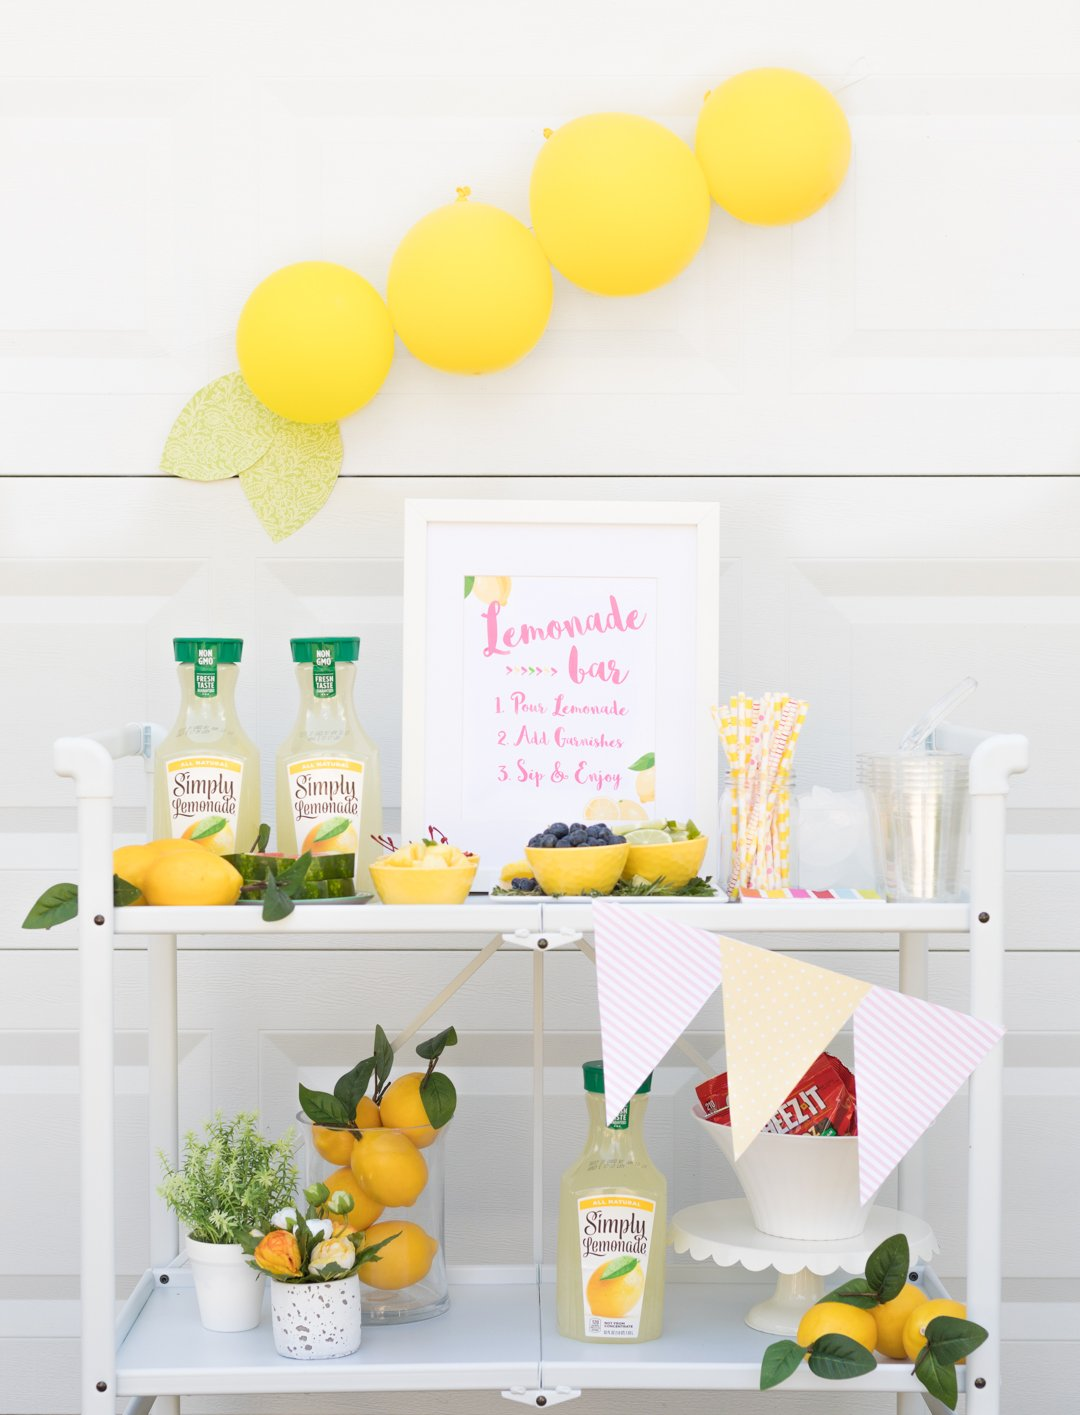 Lemonade Bar Cart Ideas. Best of summer all on one bar cart from lemonade to amazing garnishes.